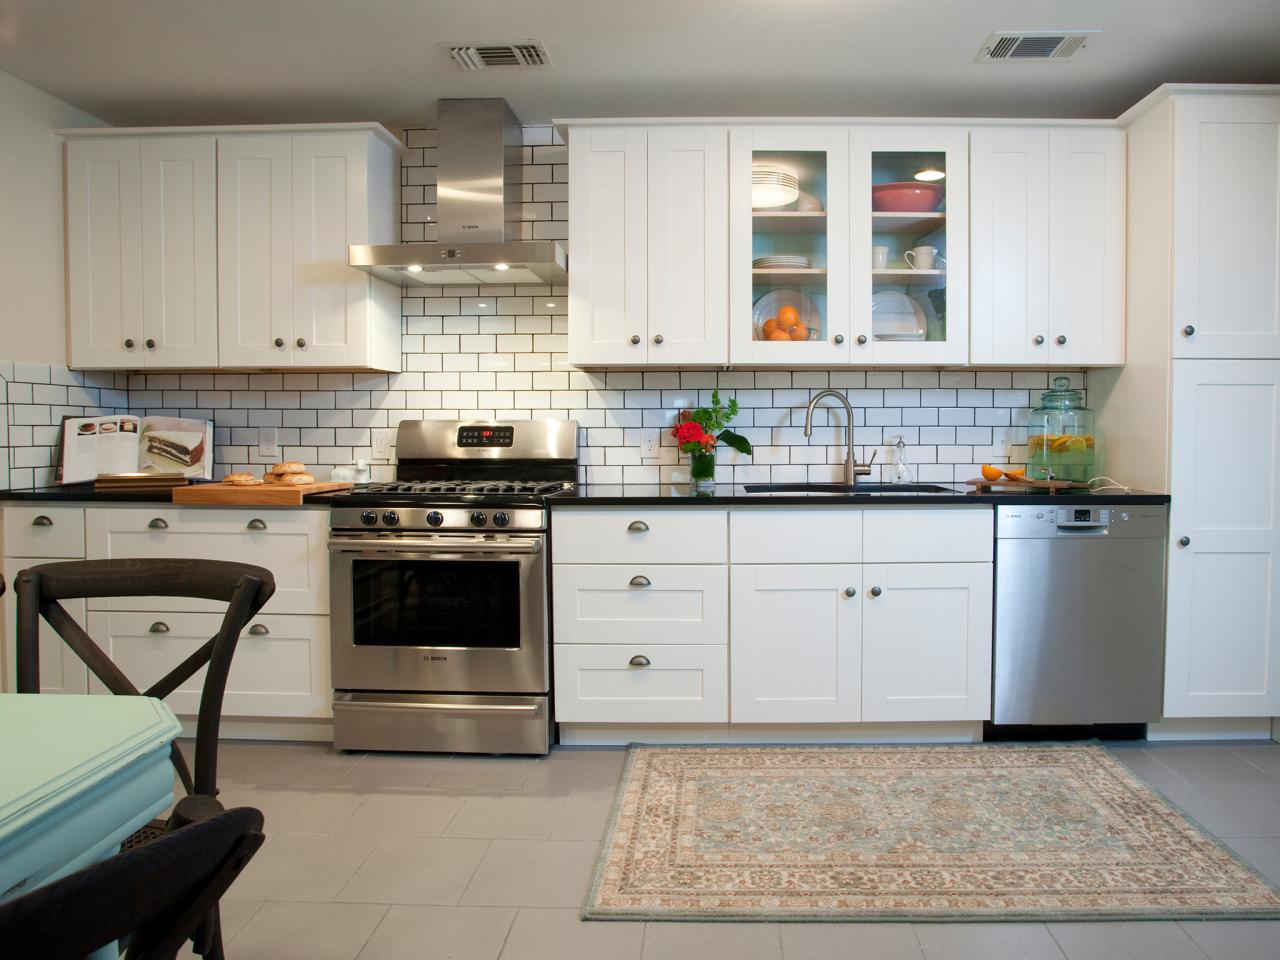 Amusing Design Of The Blue Tile Backsplash Ideas With White Cabinets And Refrigerator